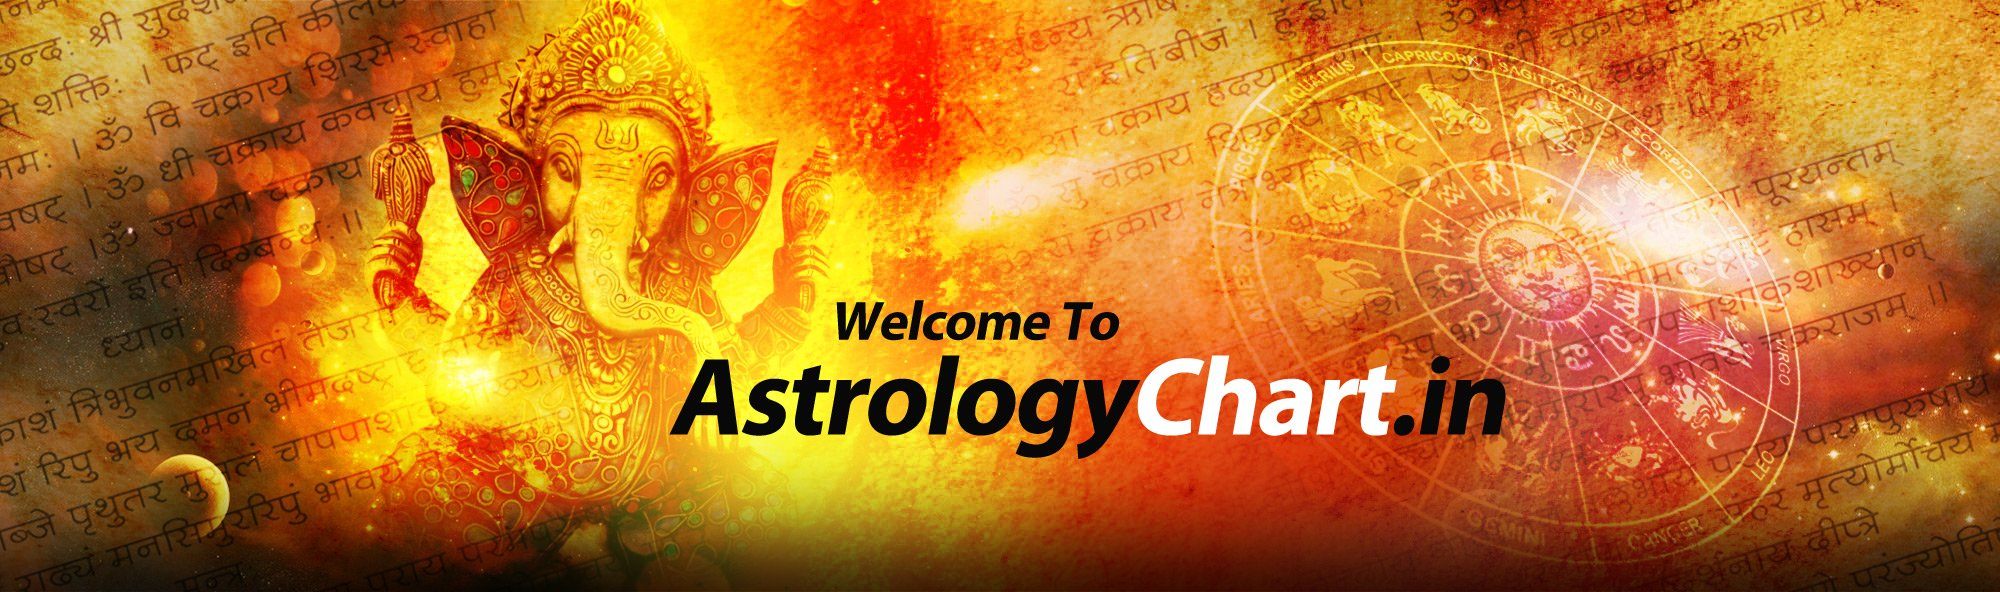 Best astrology services in india astrology chart welcome to astrology chart nvjuhfo Image collections